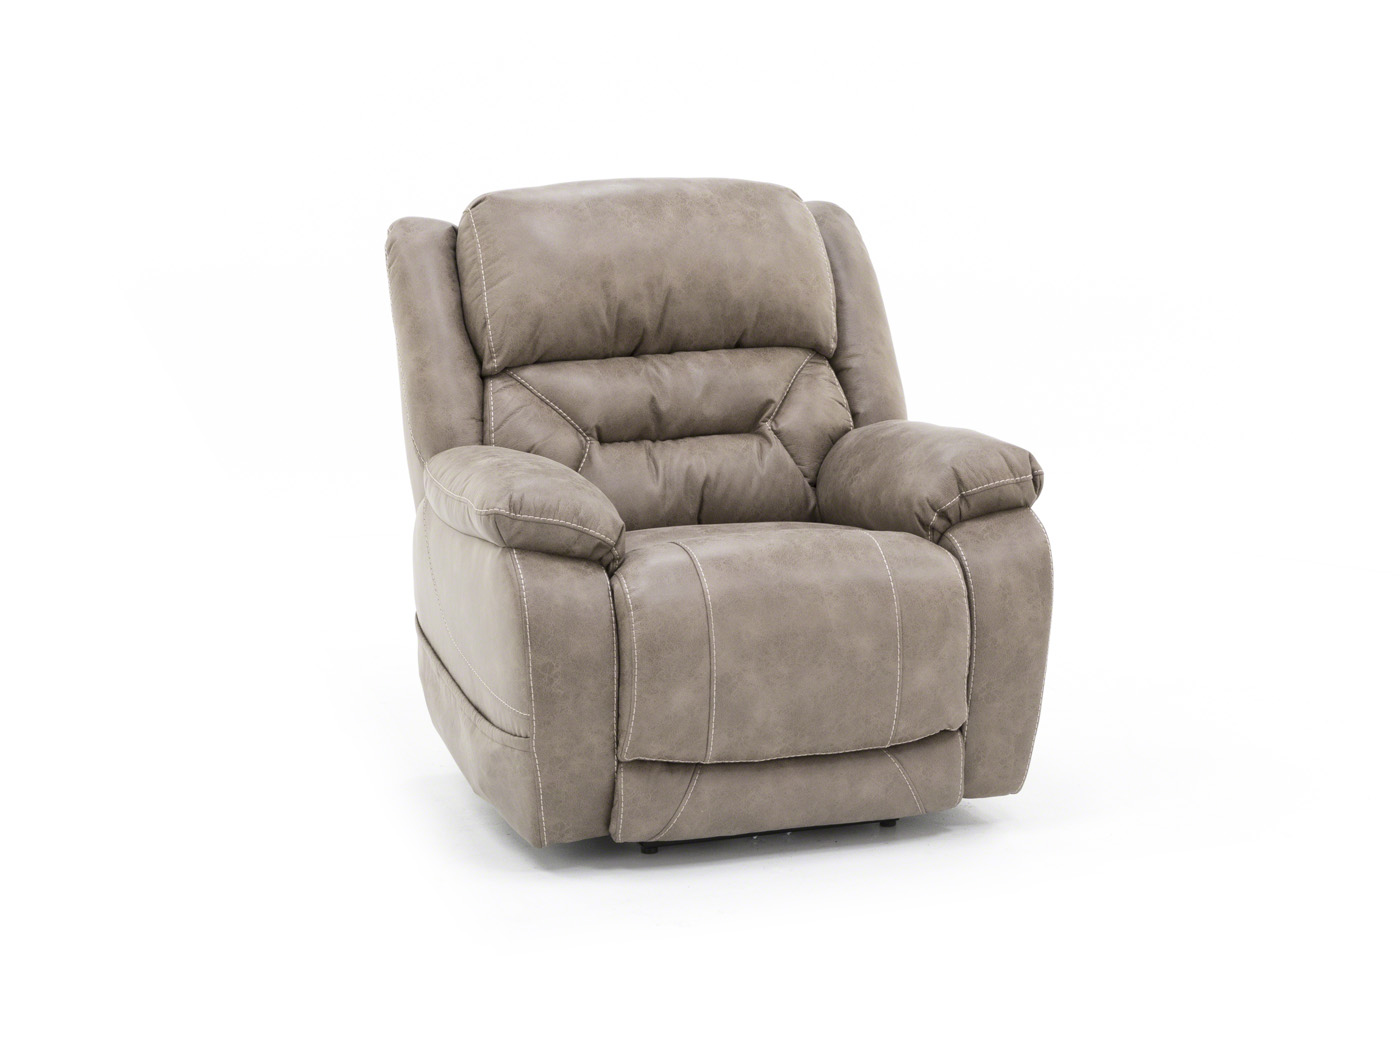 Double Wide Recliner Chair Living Room Recliners Steinhafels